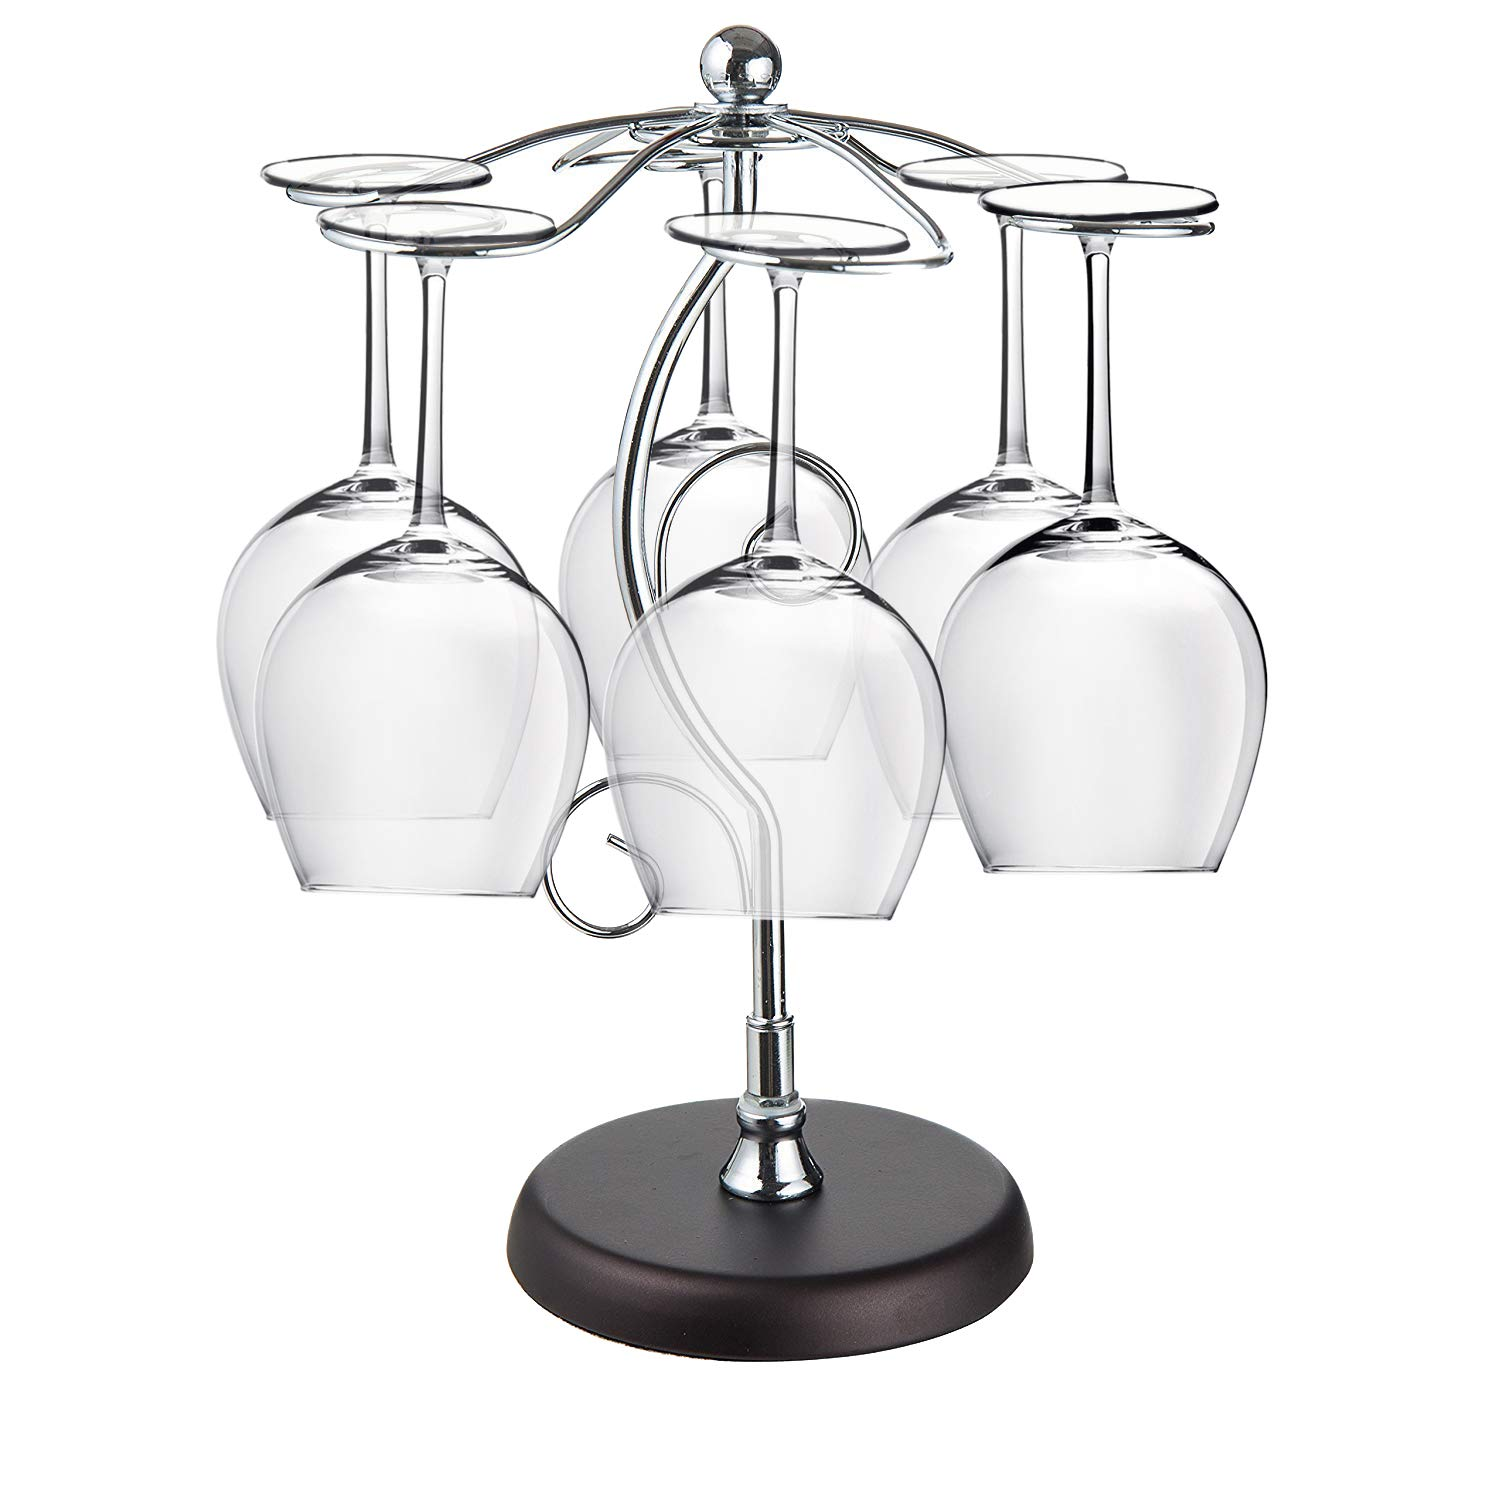 MyLifeUNIT Wine Glass Rack Stand, Metal Wine Glass Holder Rack Tree Display, 6 Cups by MyLifeUNIT